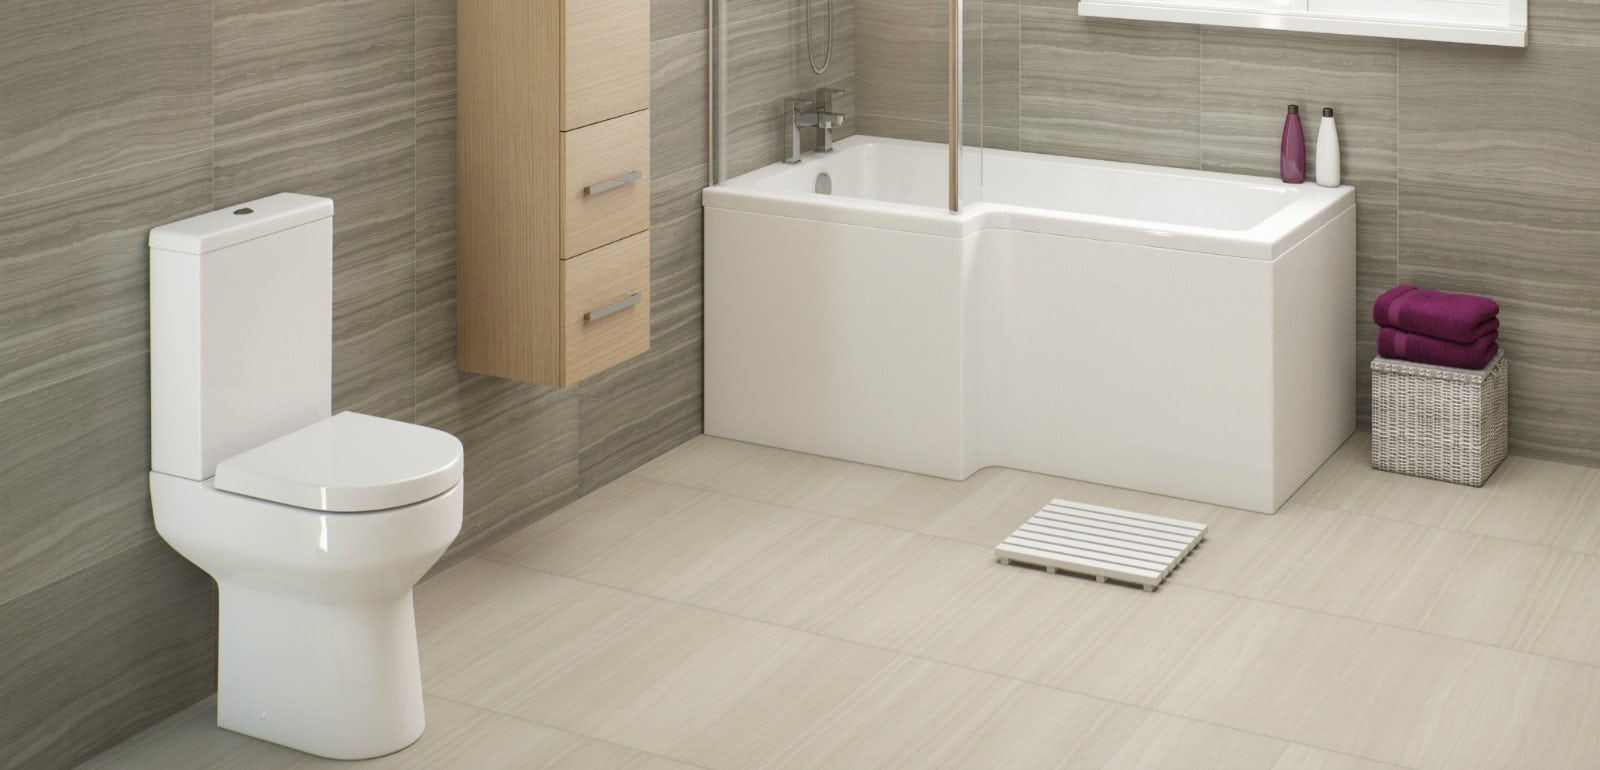 Nice 3 Top Design Tips For Planning Your New Bathroom